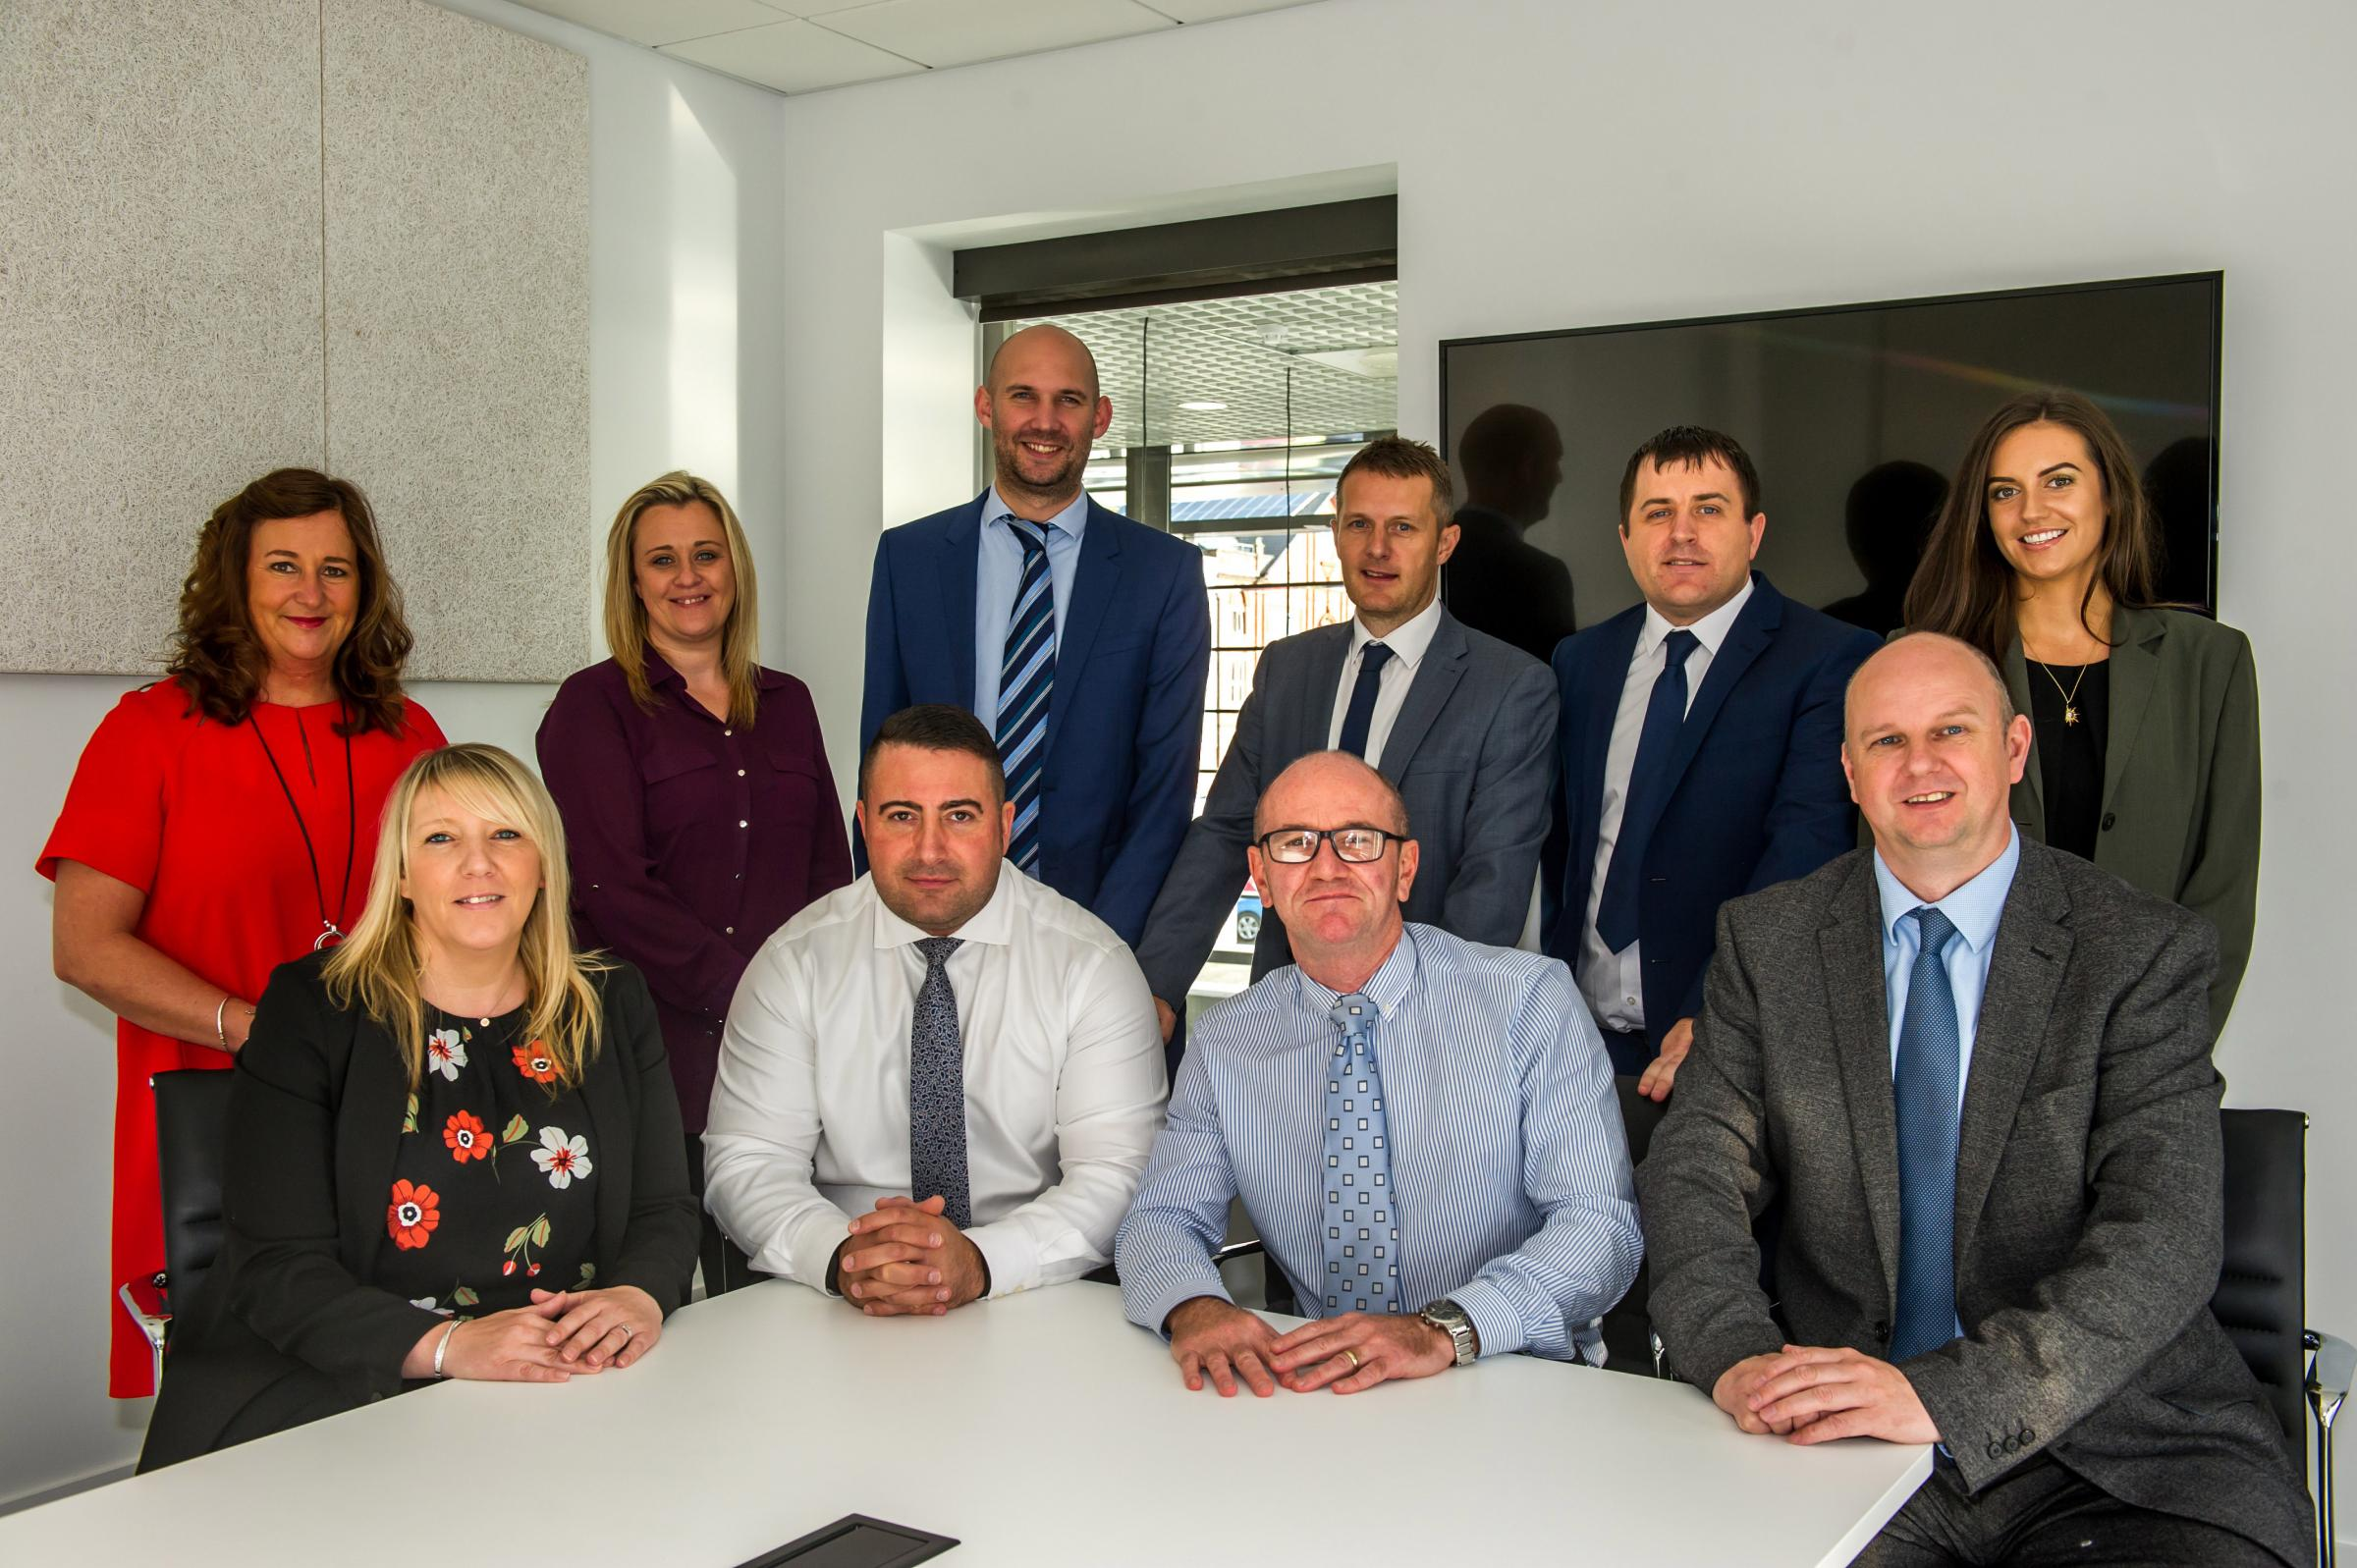 Langtree's Anthony Cassidy, front, second left, welcomed the new tenants to the site